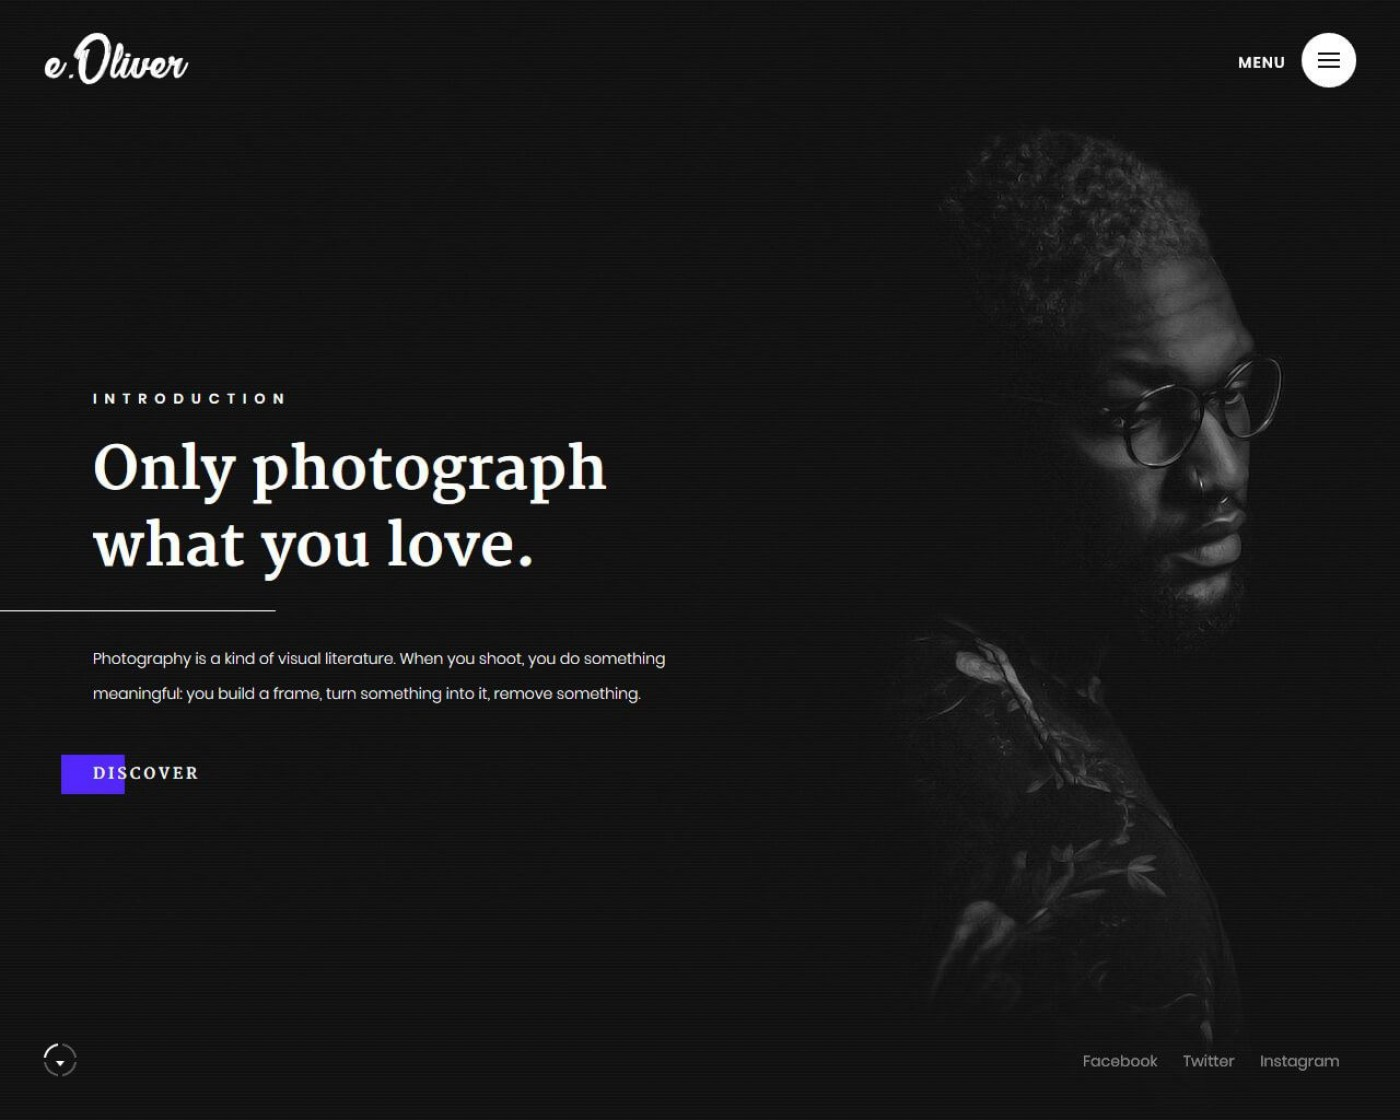 005 Fascinating Web Template For Photographer Image  Photography1400